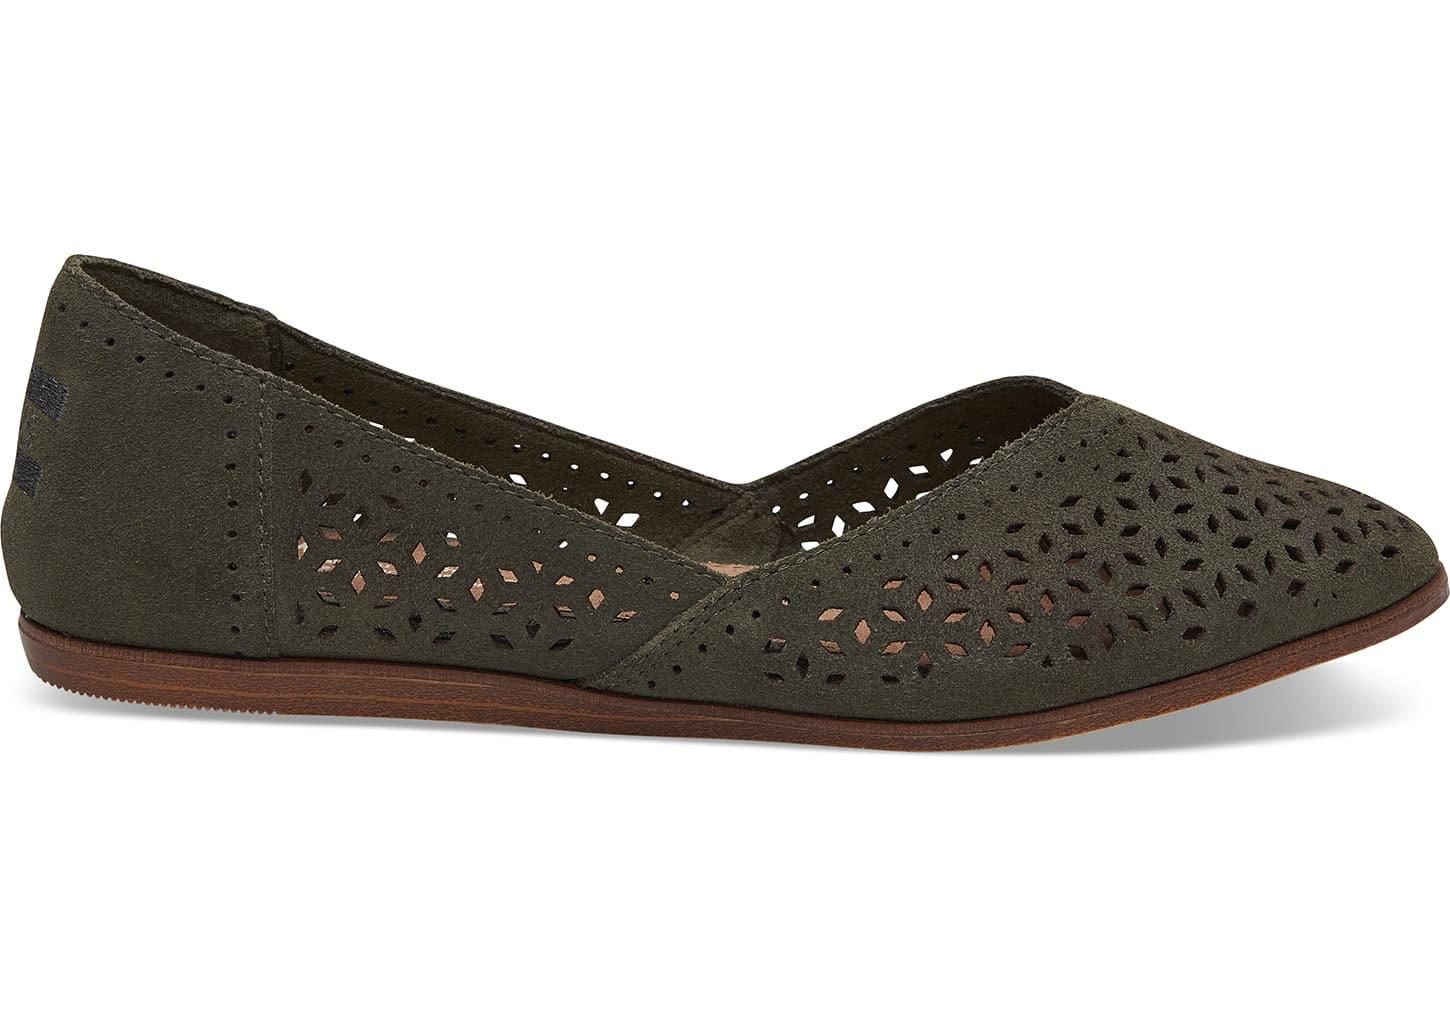 6b03613a672ae TOMS Schuhe Pine Suede Perforated Jutti Ballerinas - Lyst